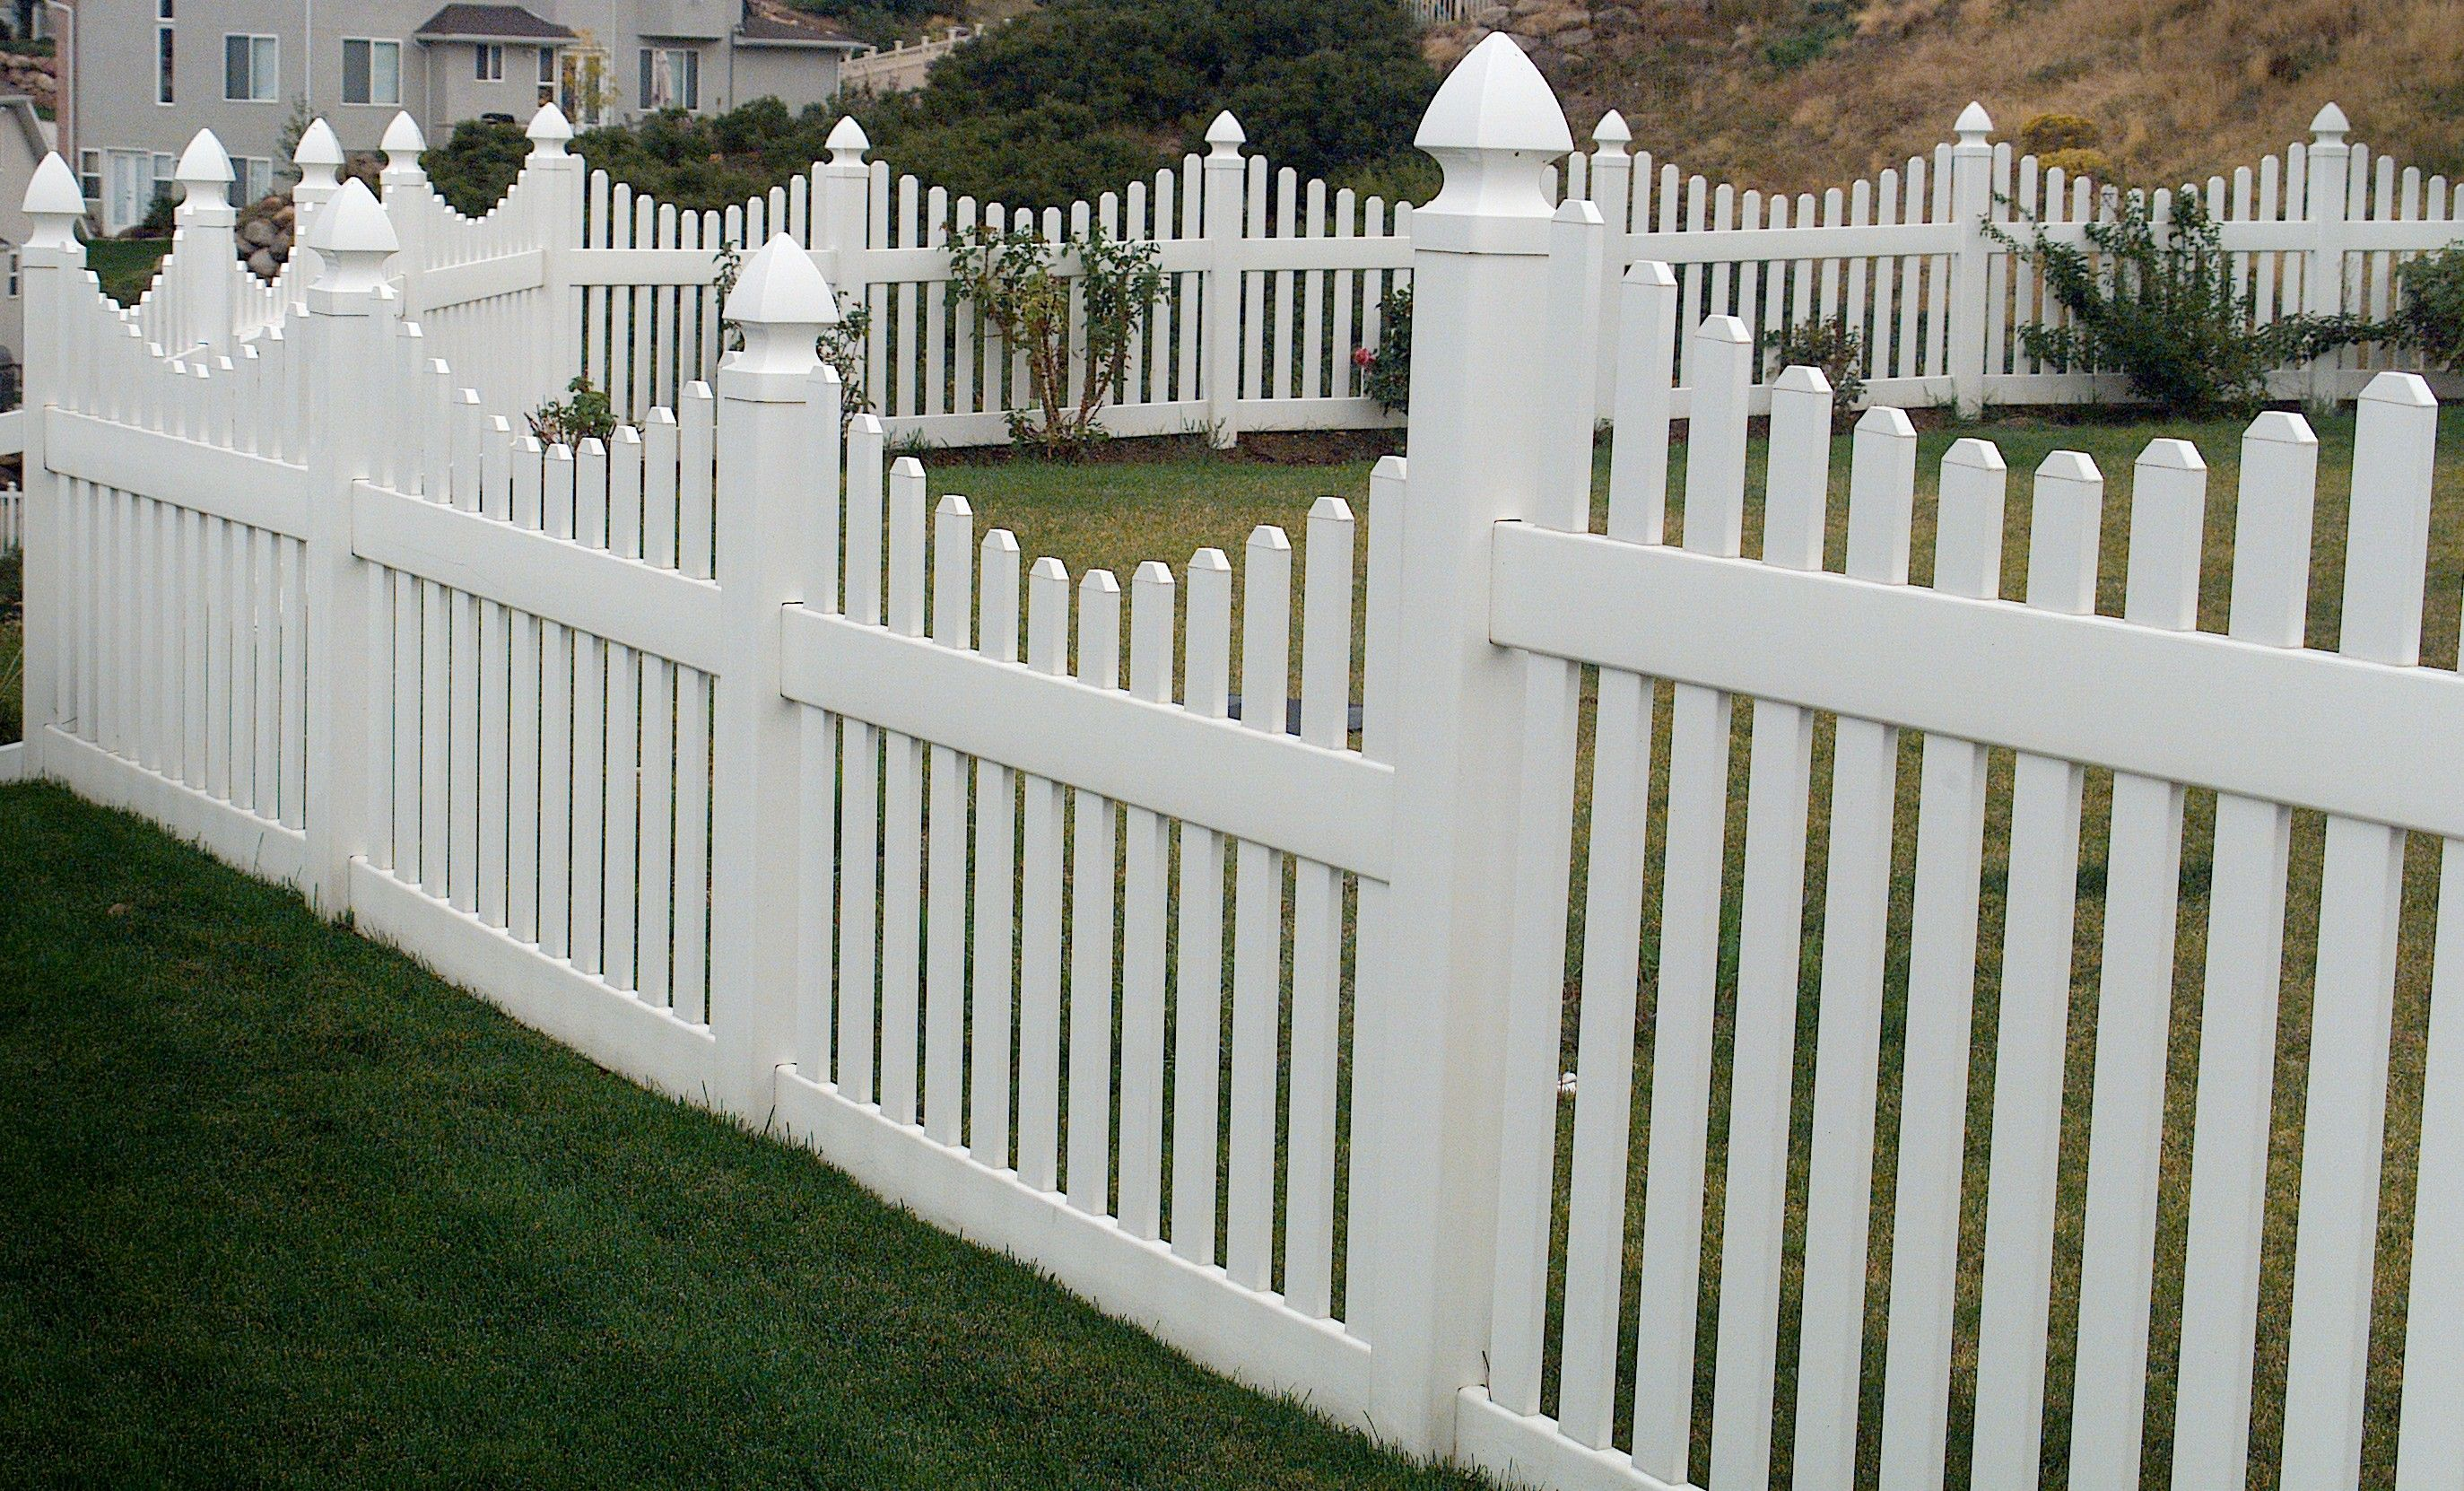 Recycled Wood Fence Panels Composite Pool Fence Composite Fence Panel Backyard Fences Picket Fence Panels Concrete Fence